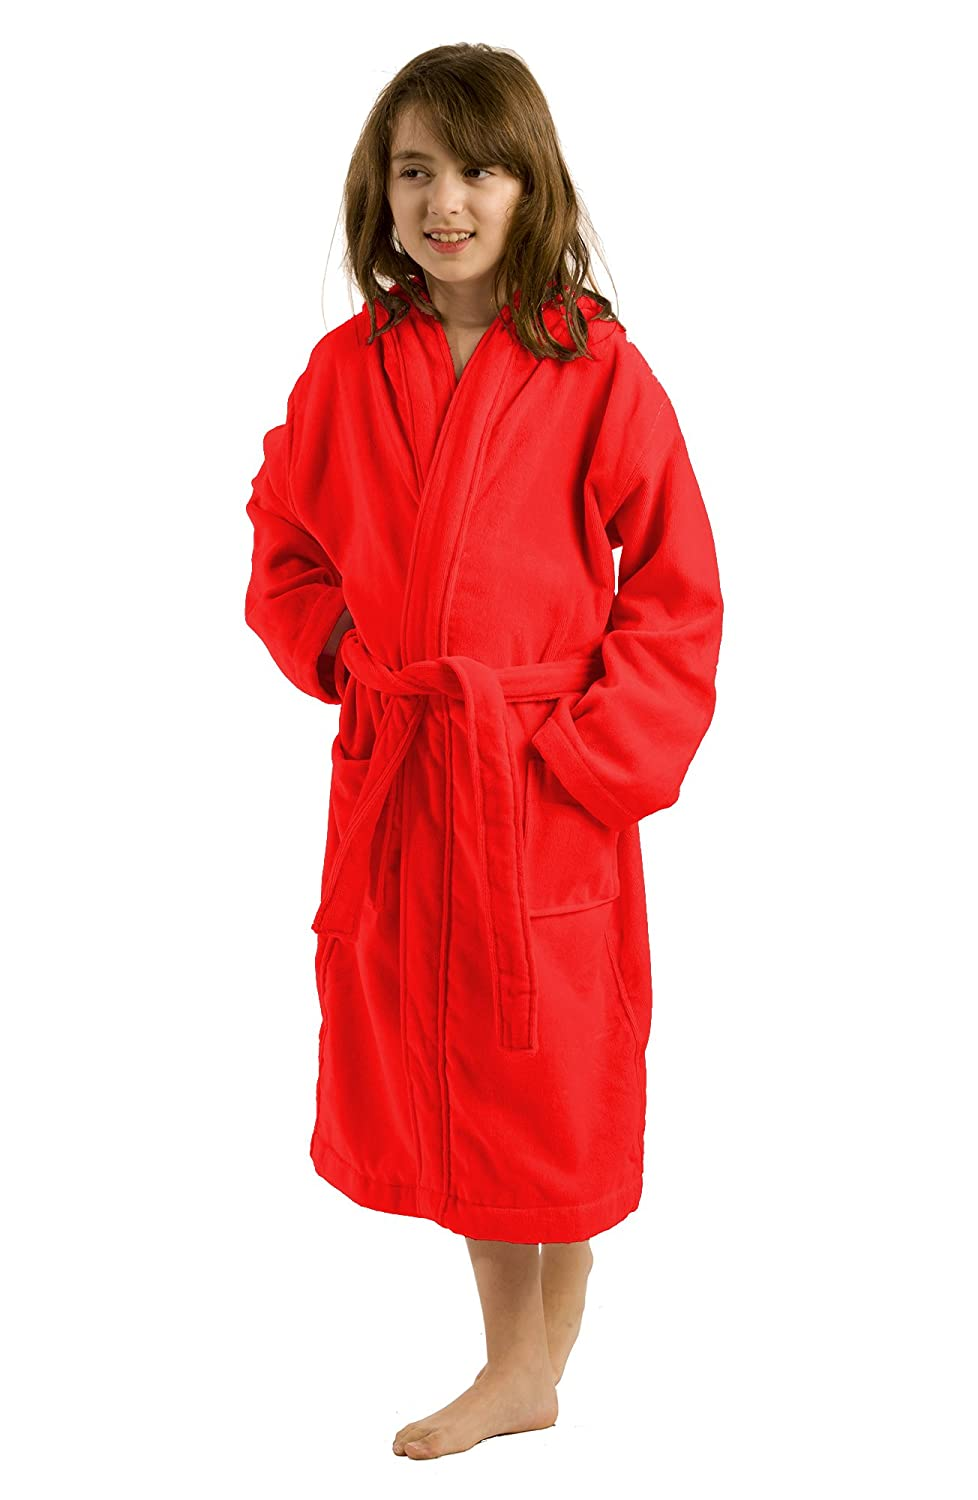 byLora, Terry Cloth Hooded Boys and Girls Robe, 100% Cotton Kids Bathrobe